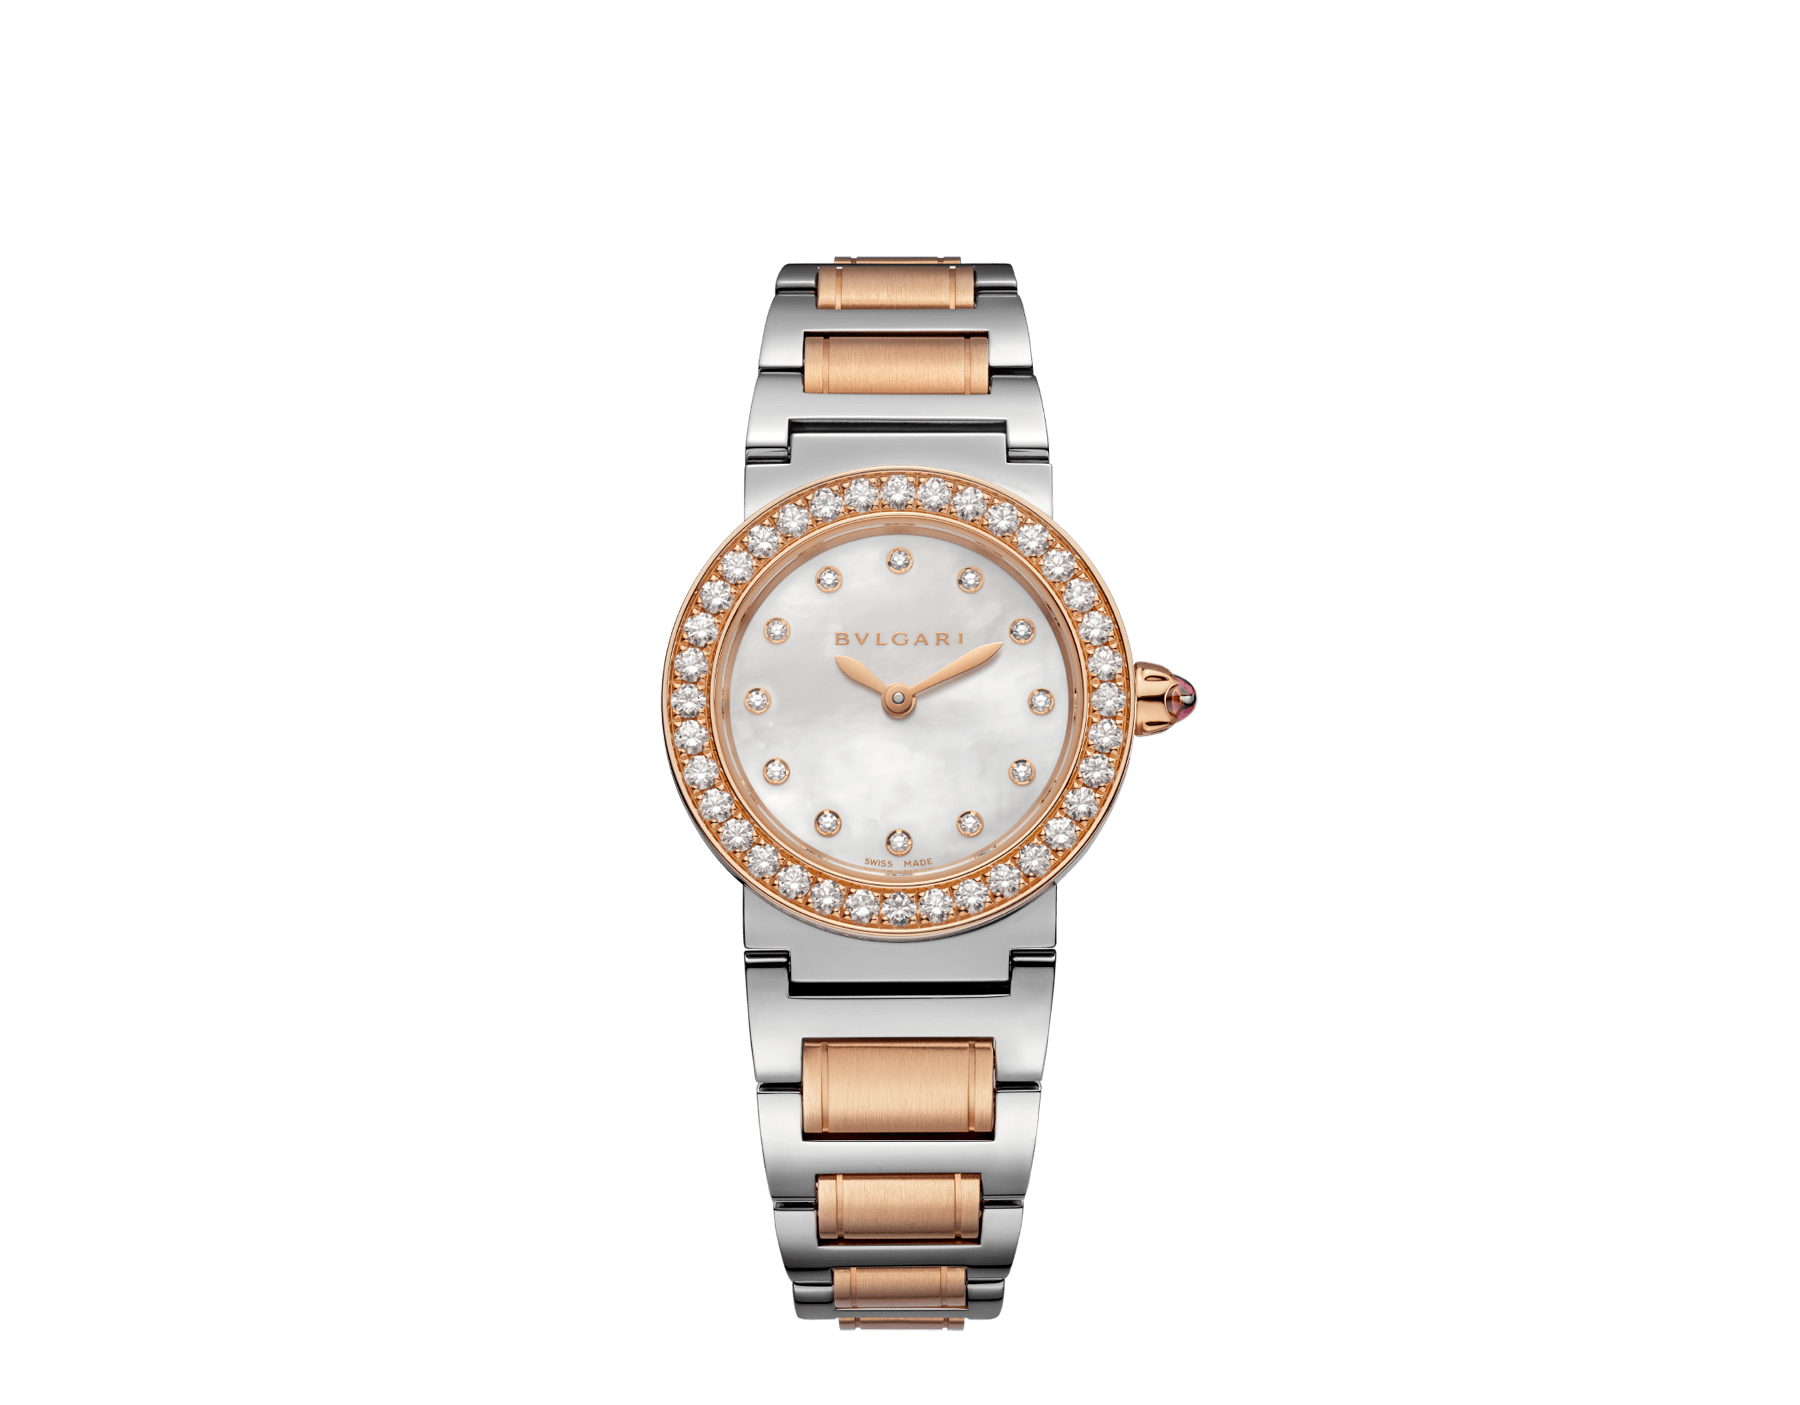 The BVLGARI BVLGARI watch has a stainless steel case, 18 kt rose gold bezel set with diamonds, white mother-of-pearl dial set with diamond indices and a stainless steel and 18 kt rose gold bracelet. 102477 image 1